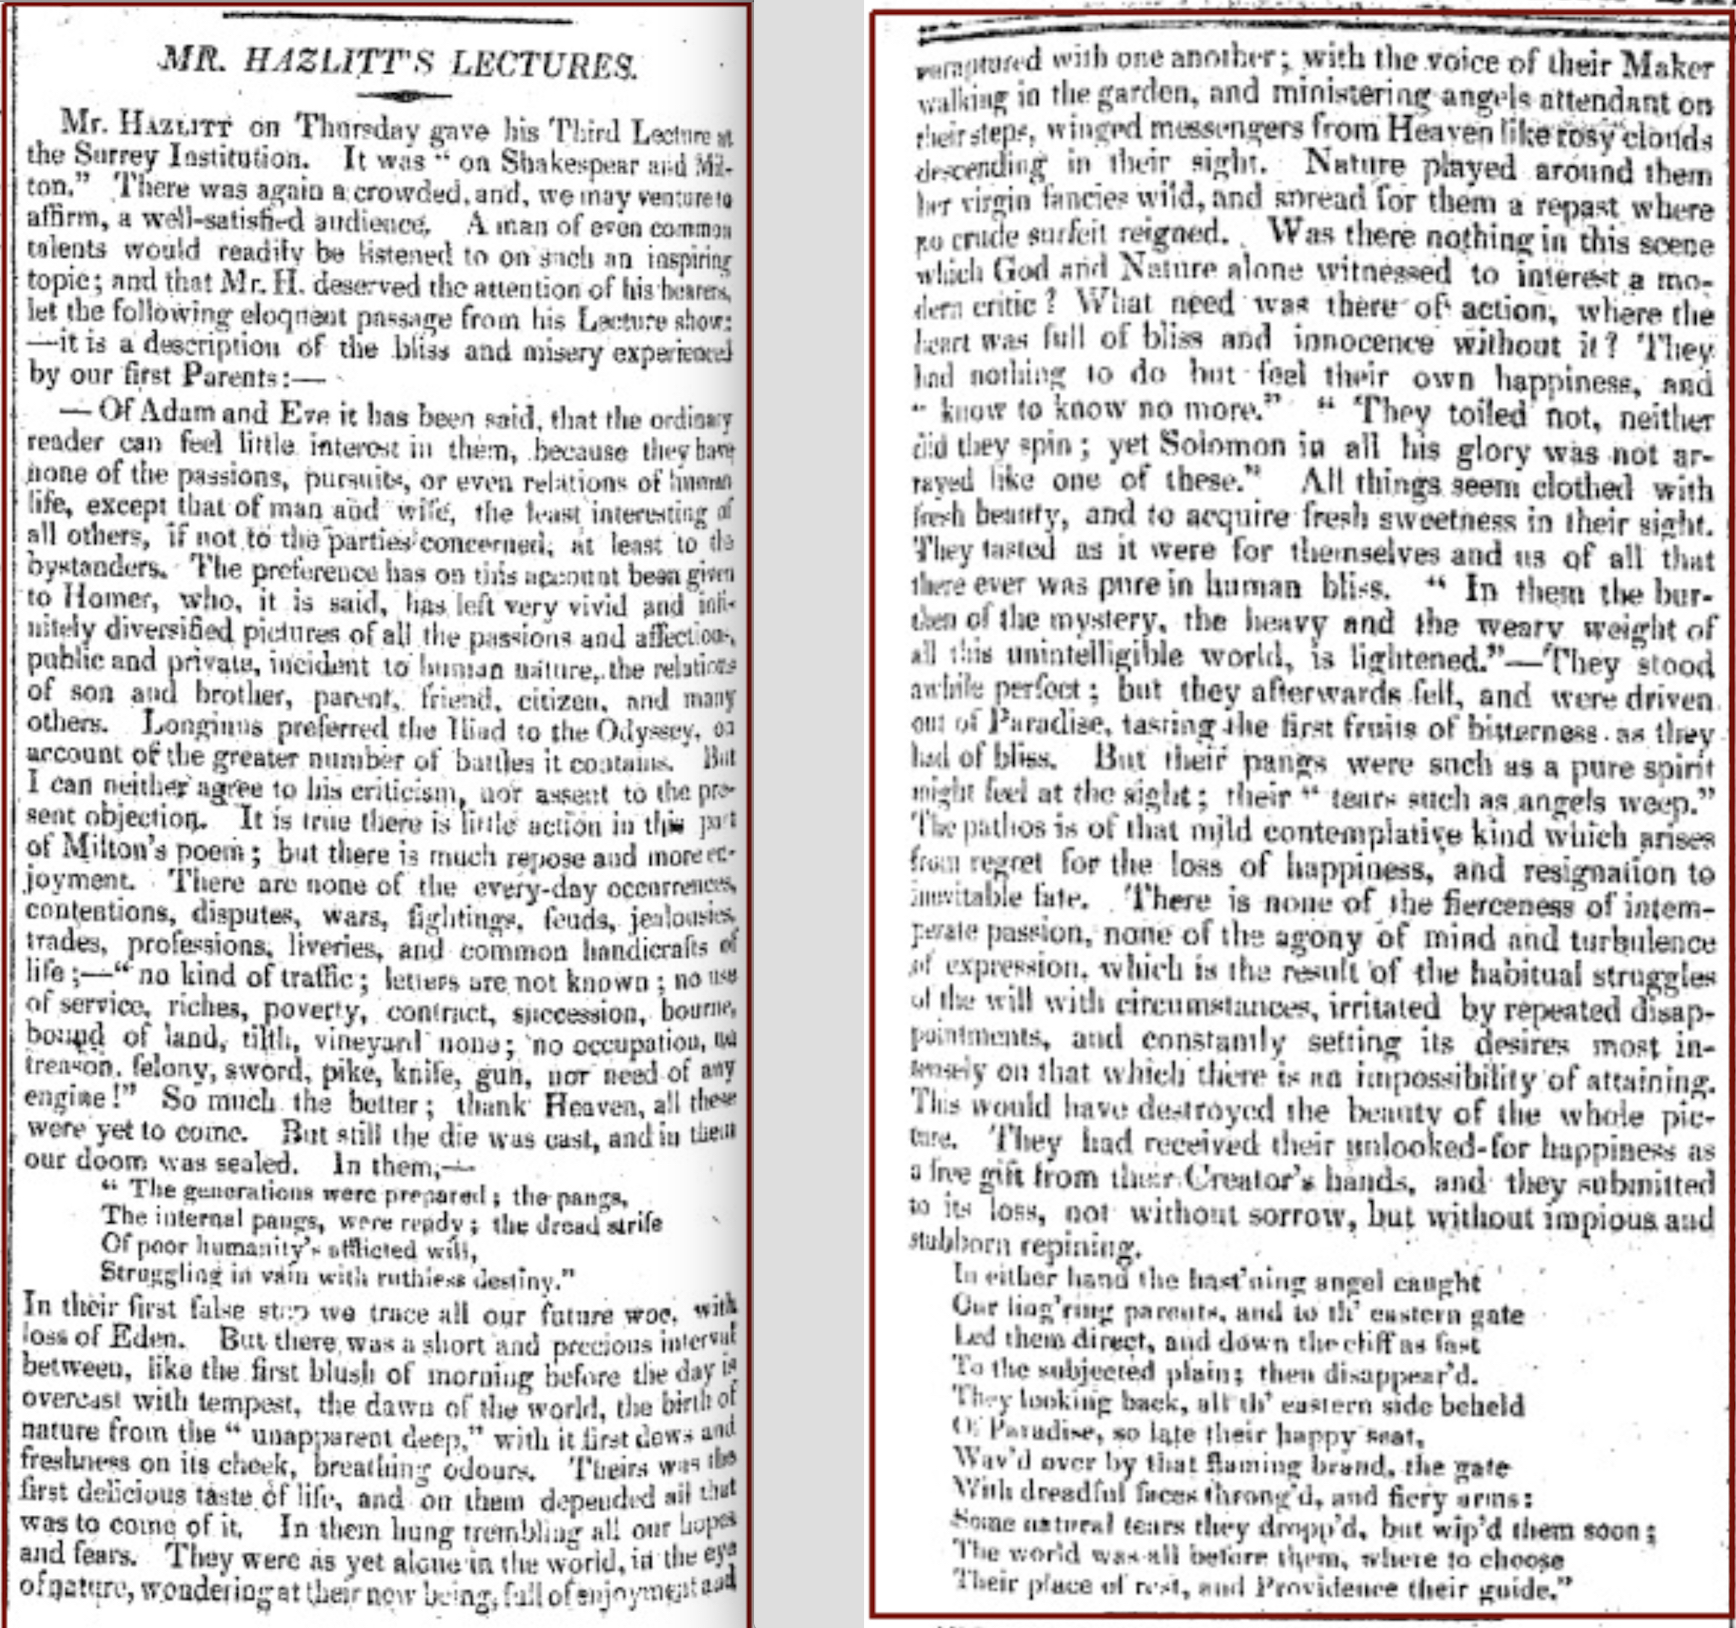 Mr. Hazlitt's Lectures, The Examiner, 1 Feb 1818, pp.76-77